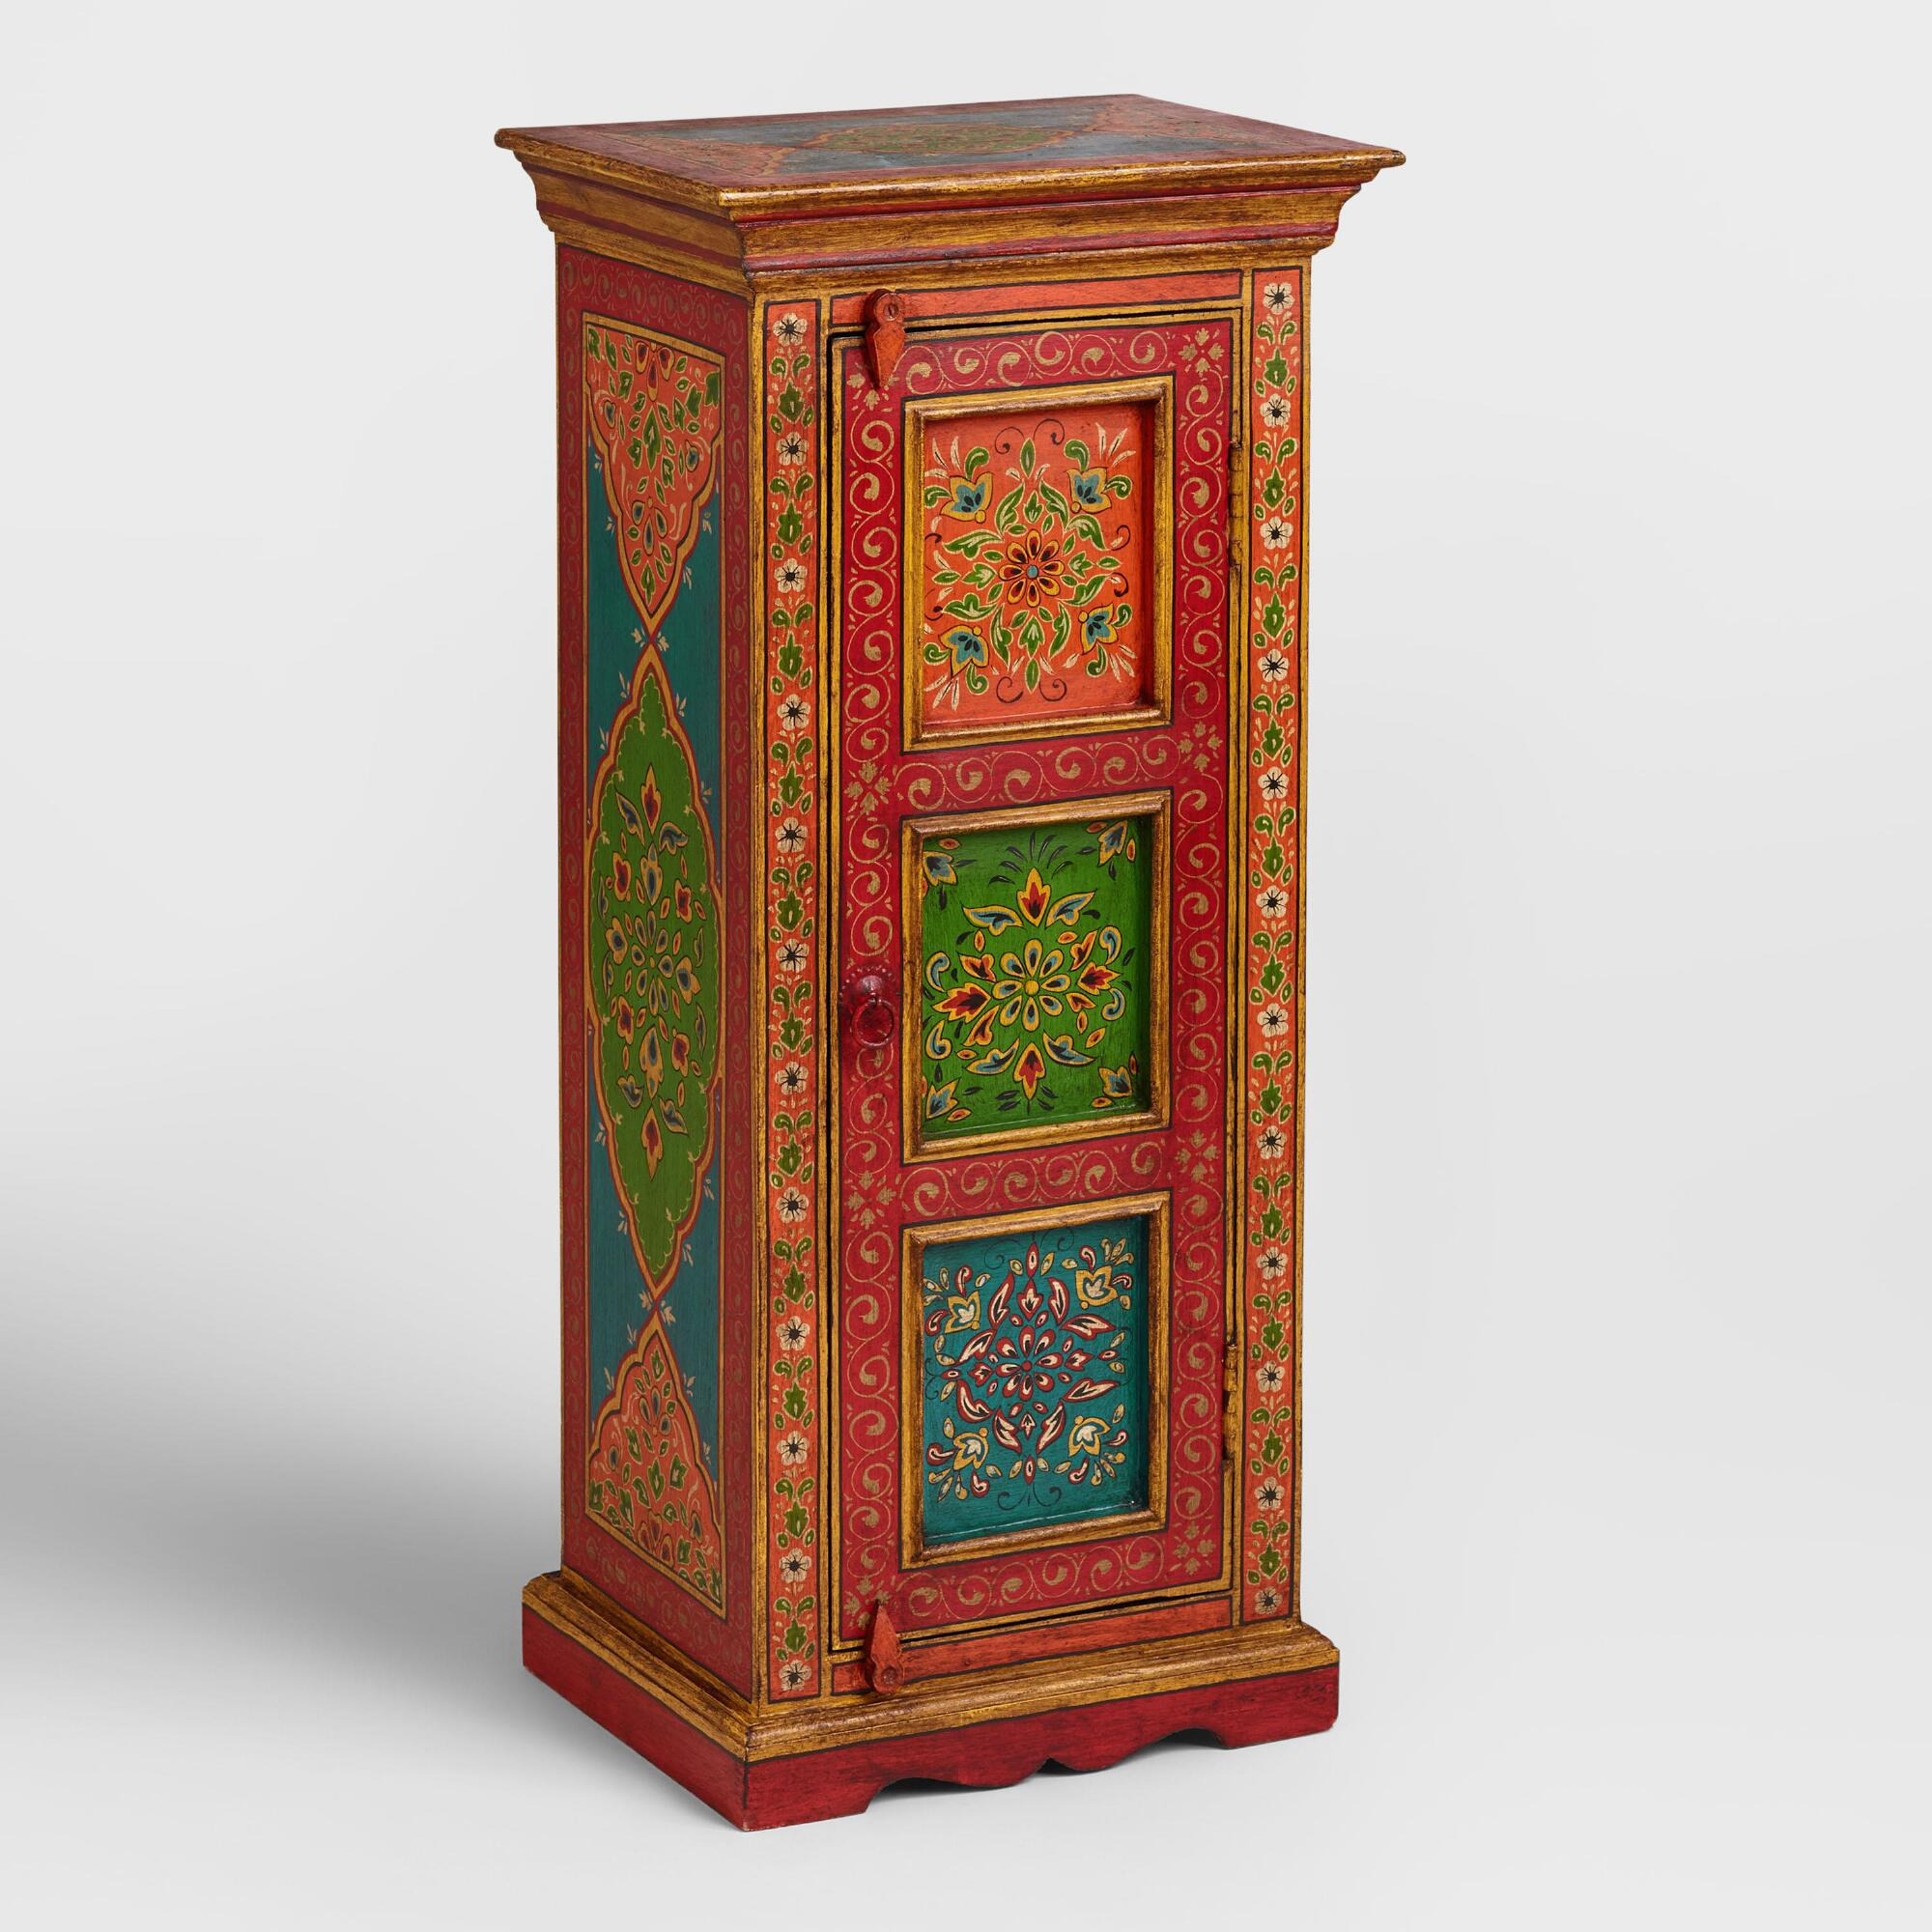 Hand Painted Floral Wood Cabinet: Multi by World Market